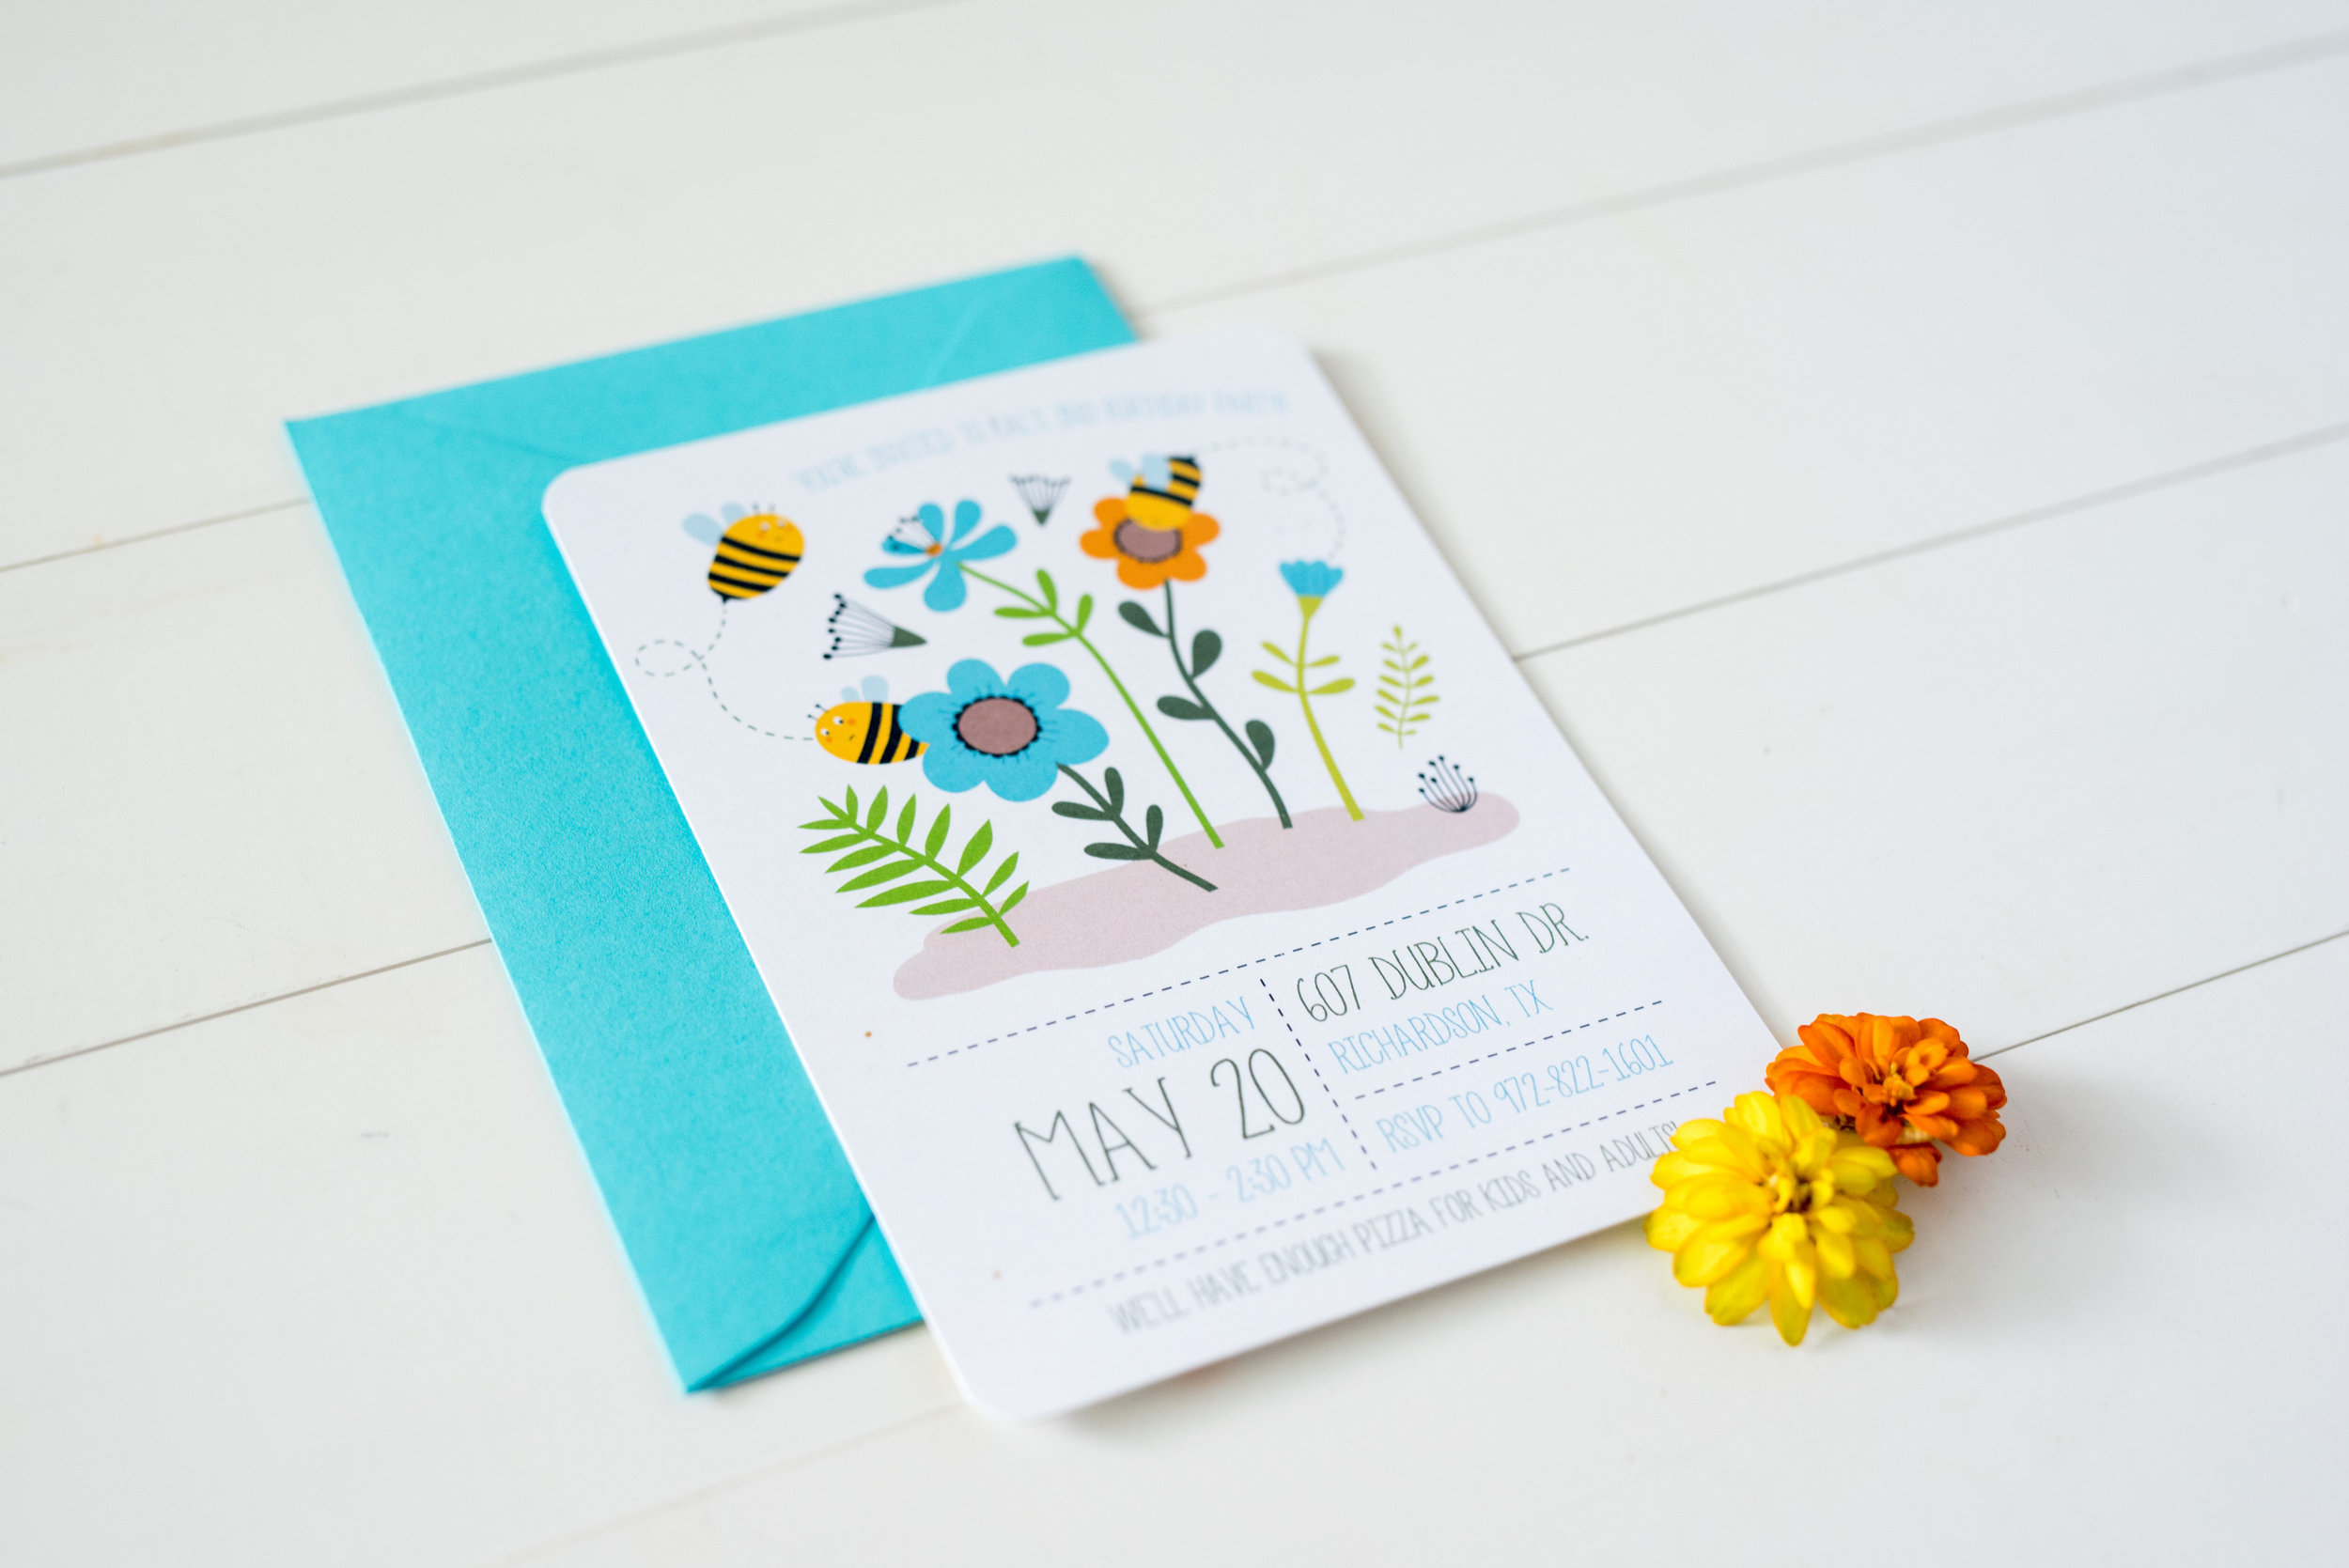 Less is always more! Protip: Gotta garden outside? Go grab some flowers! Our yellow and orange zinnias did the trick for this simple bee themed birthday invitation. Photo by: Lexie faucher photography